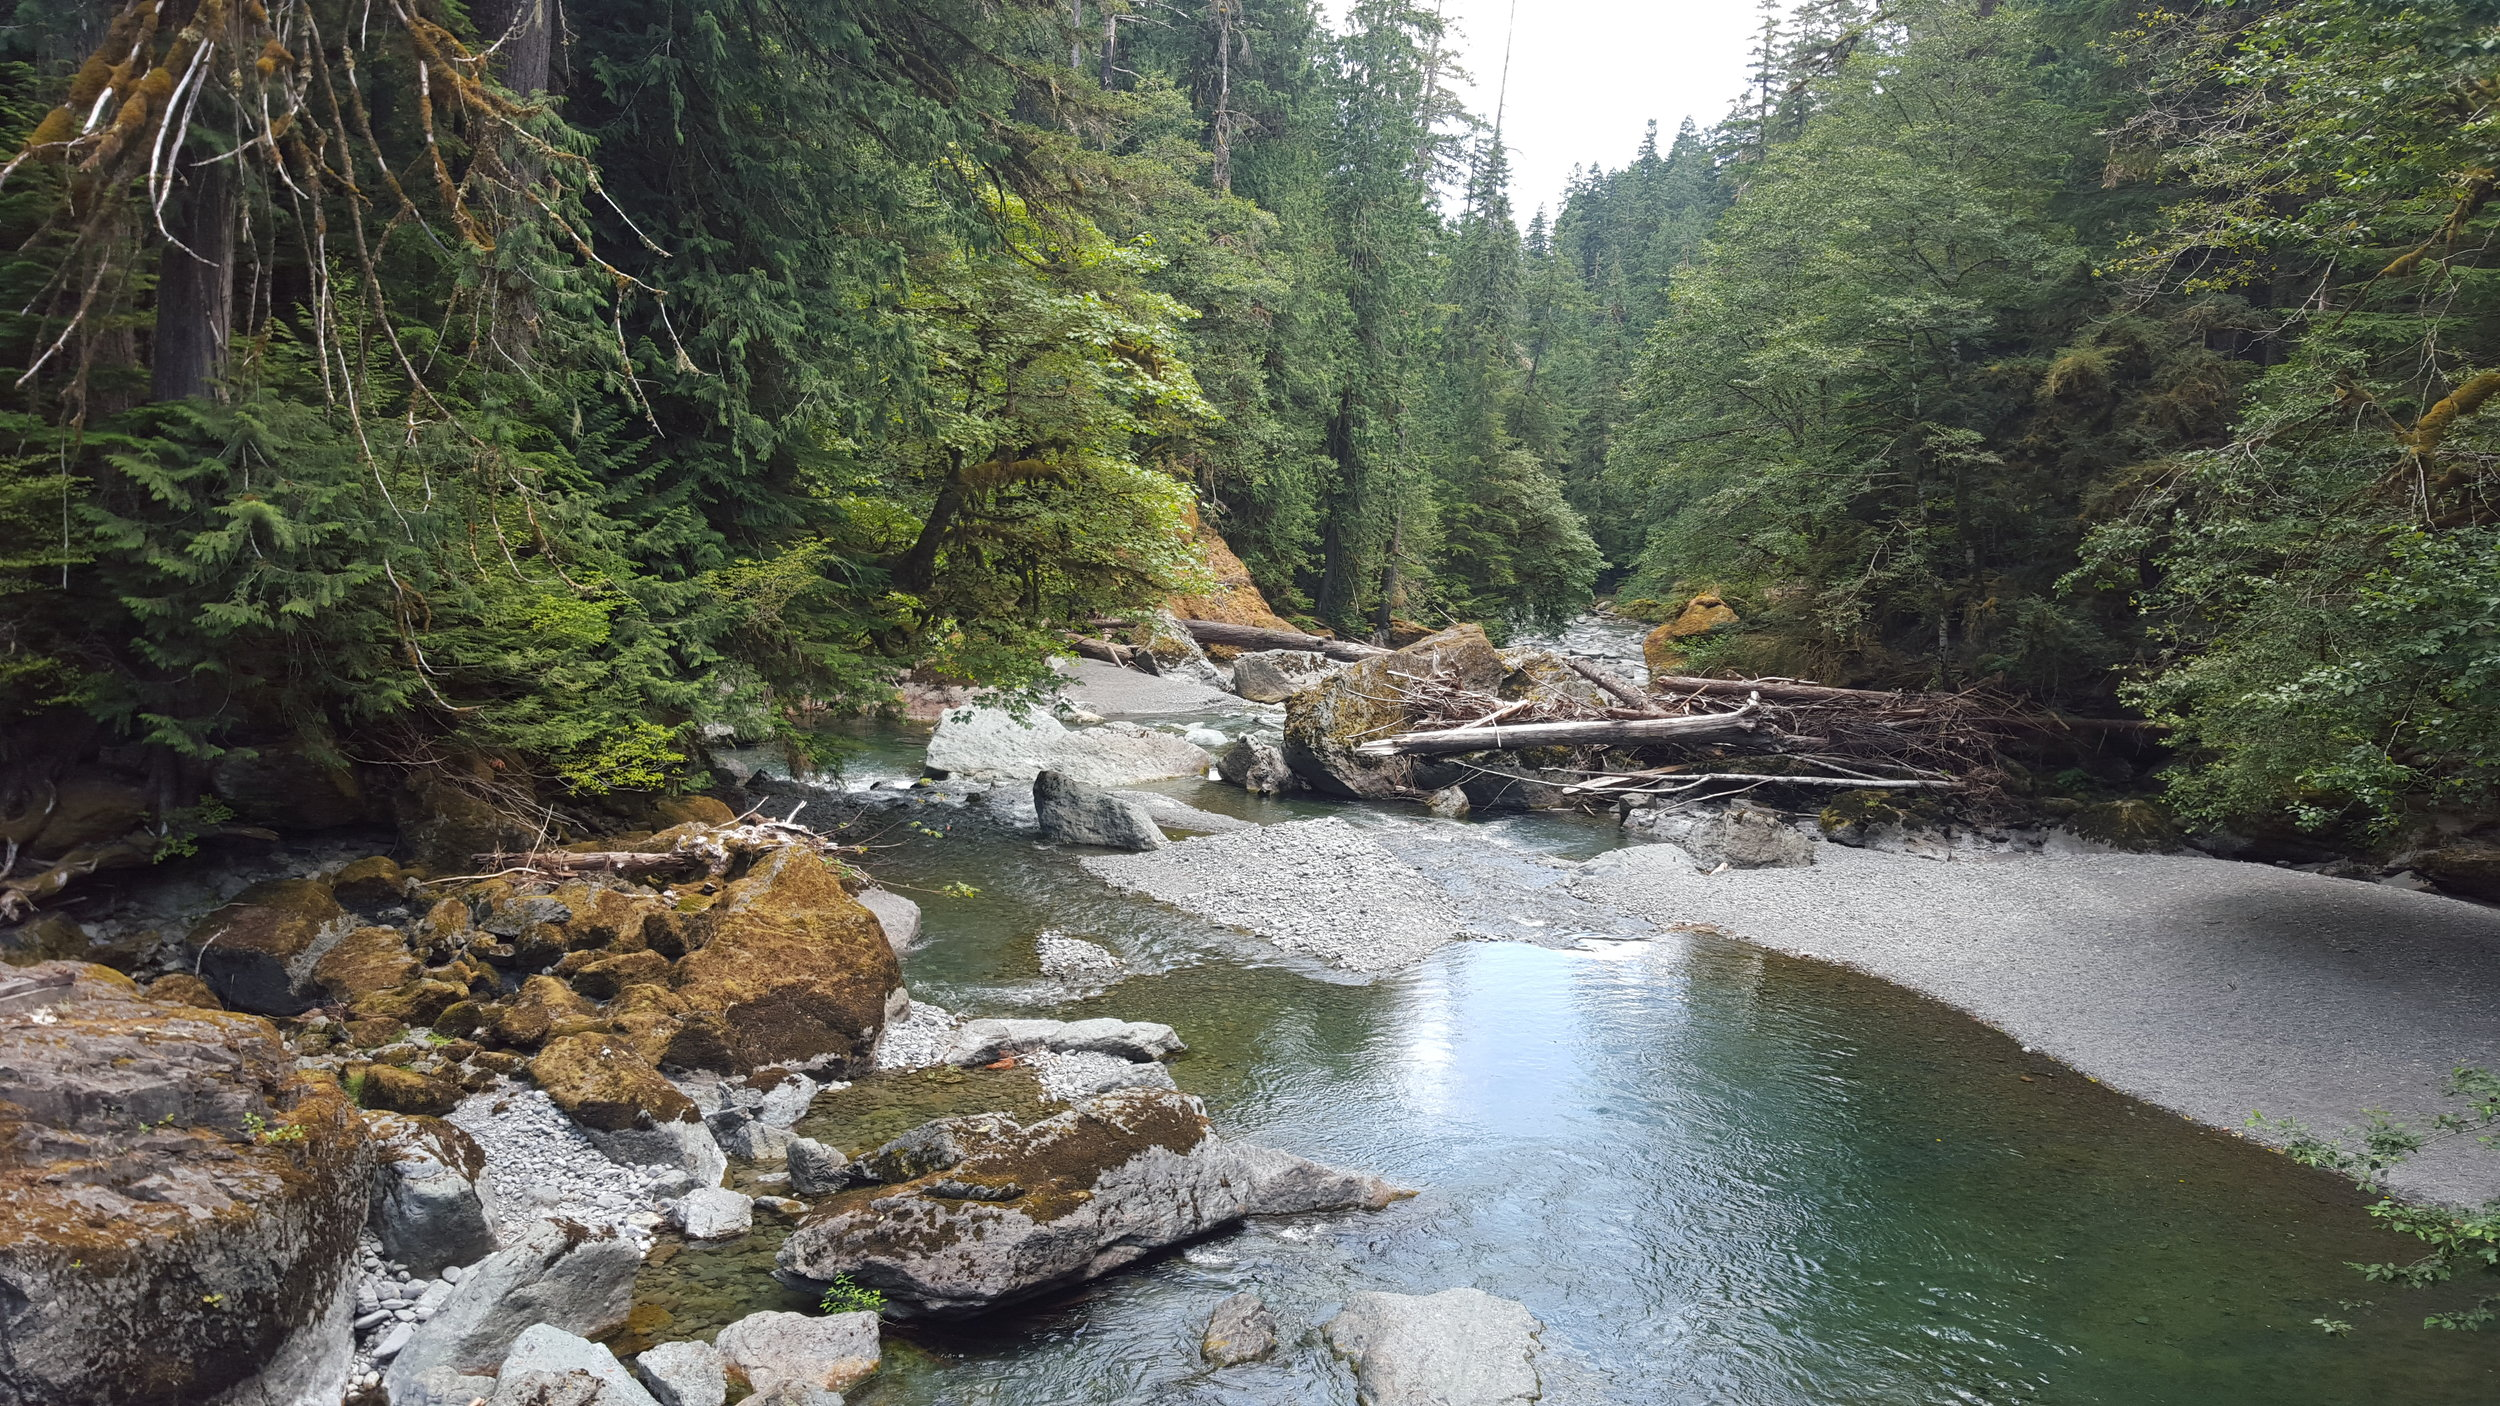 Northwest Pearls: North Fork Skokomish River